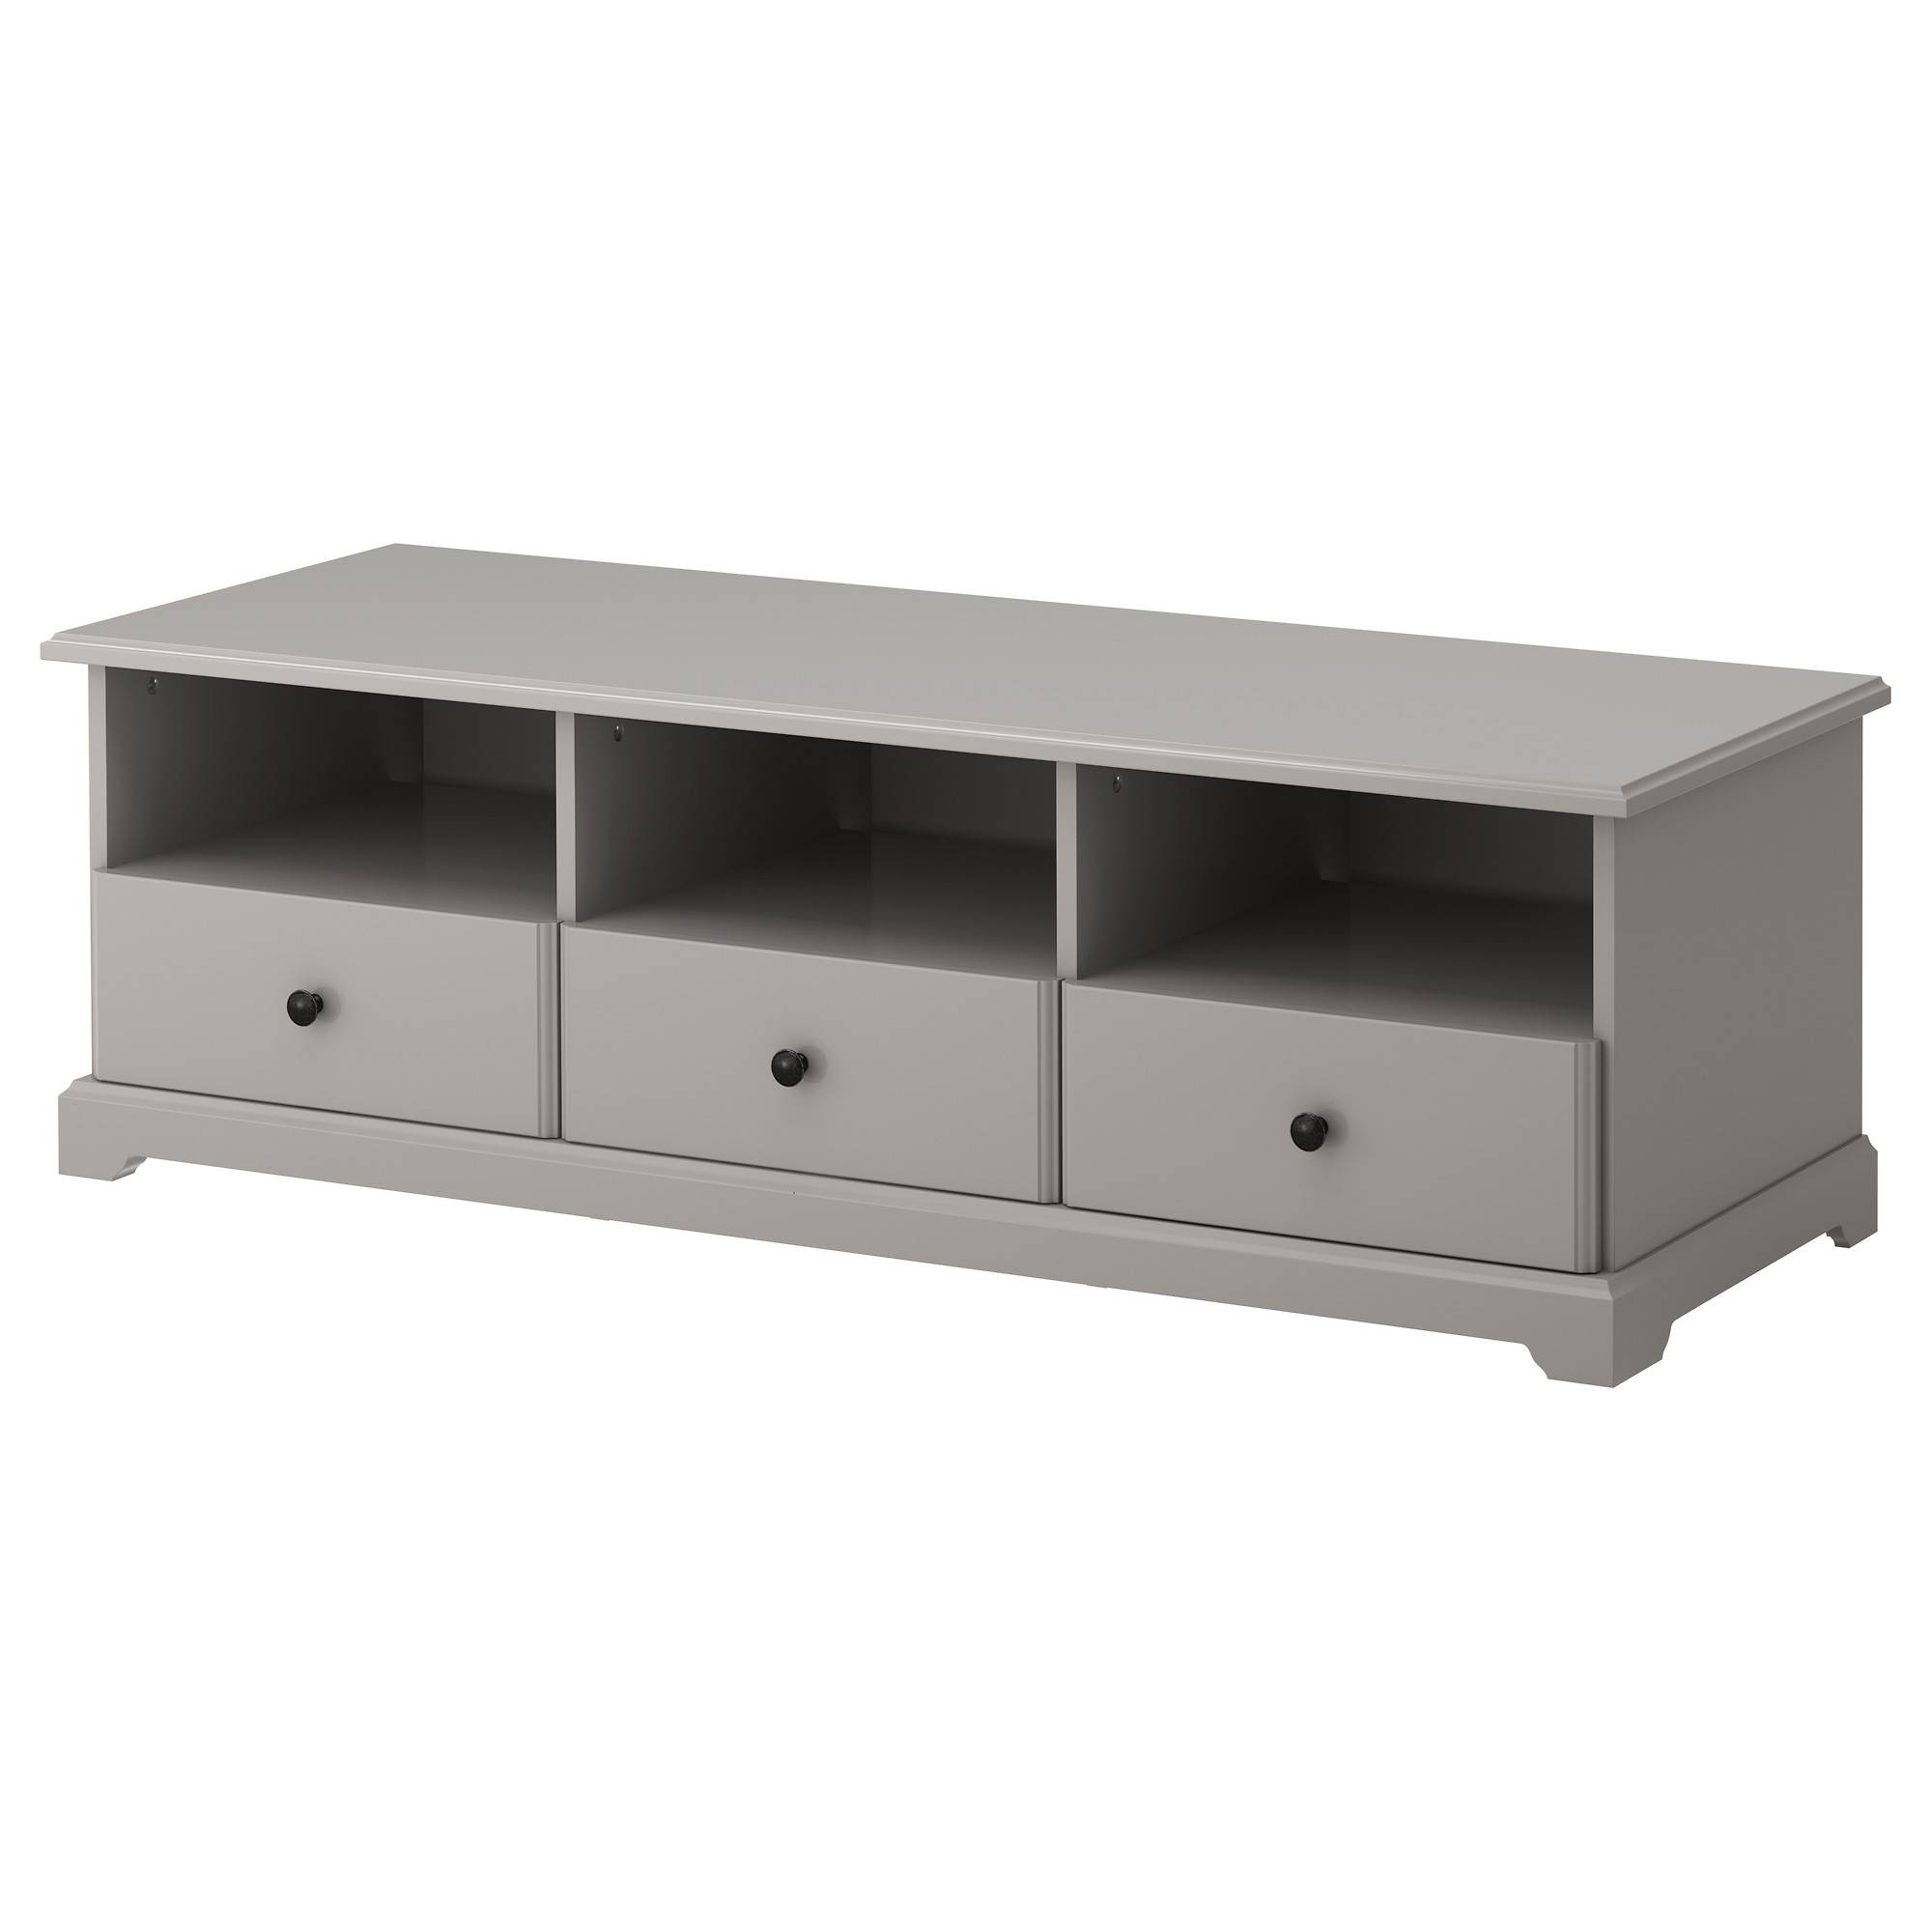 Tv Stands & Entertainment Centers - Ikea throughout Low Corner Tv Cabinets (Image 11 of 15)